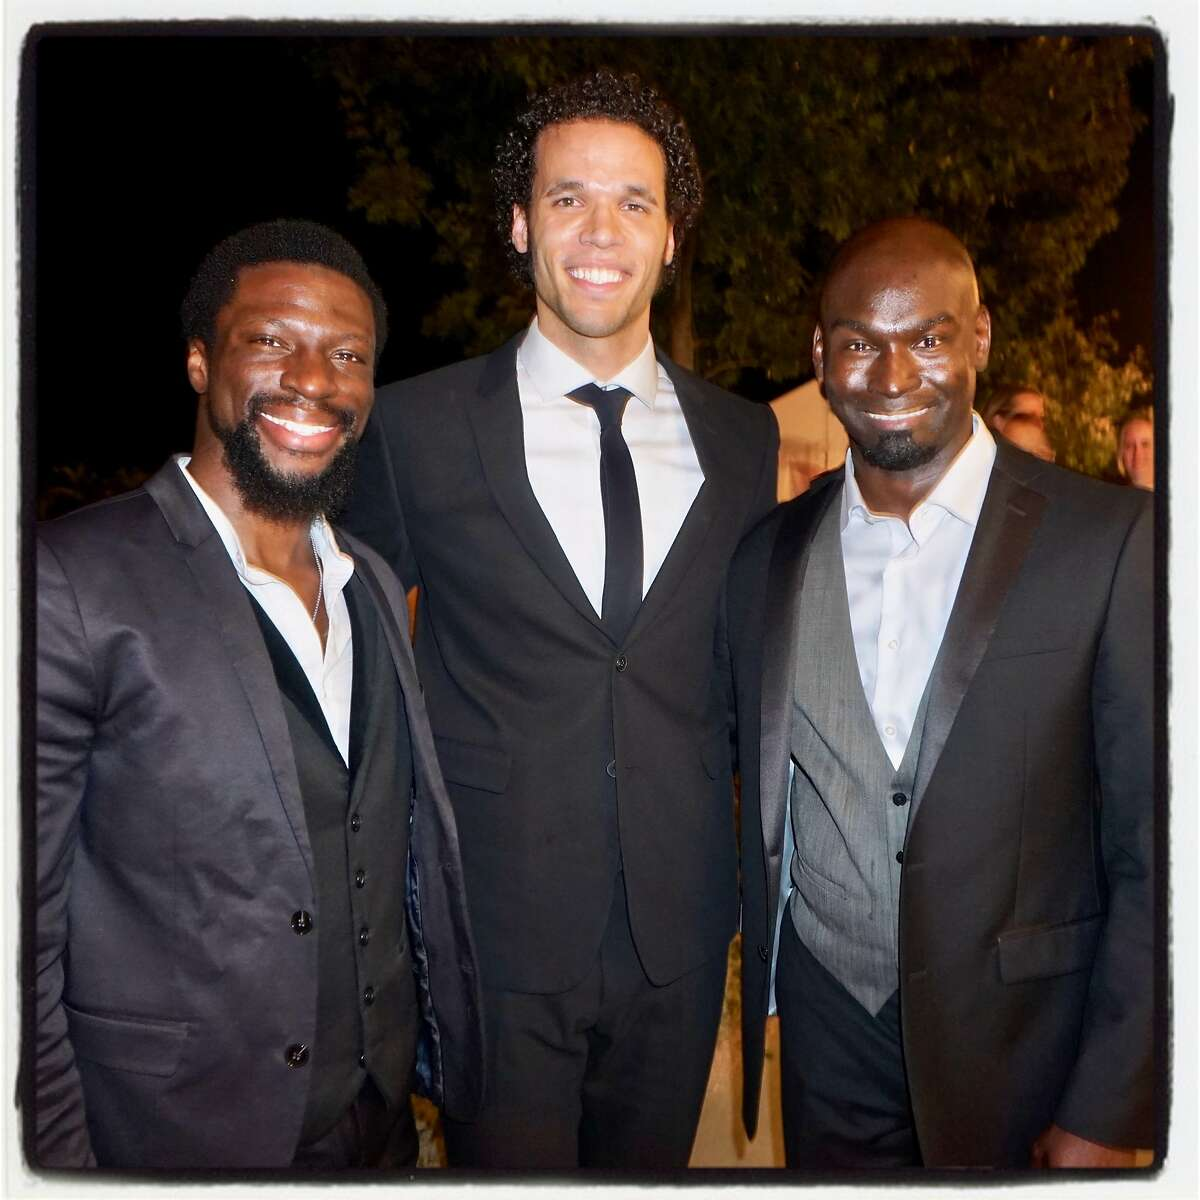 Hamilton cast members (from left) Michael Luwoye, Jordan Donica and Isaiah Johnson at the Arts for all Gala. July 16, 2017.